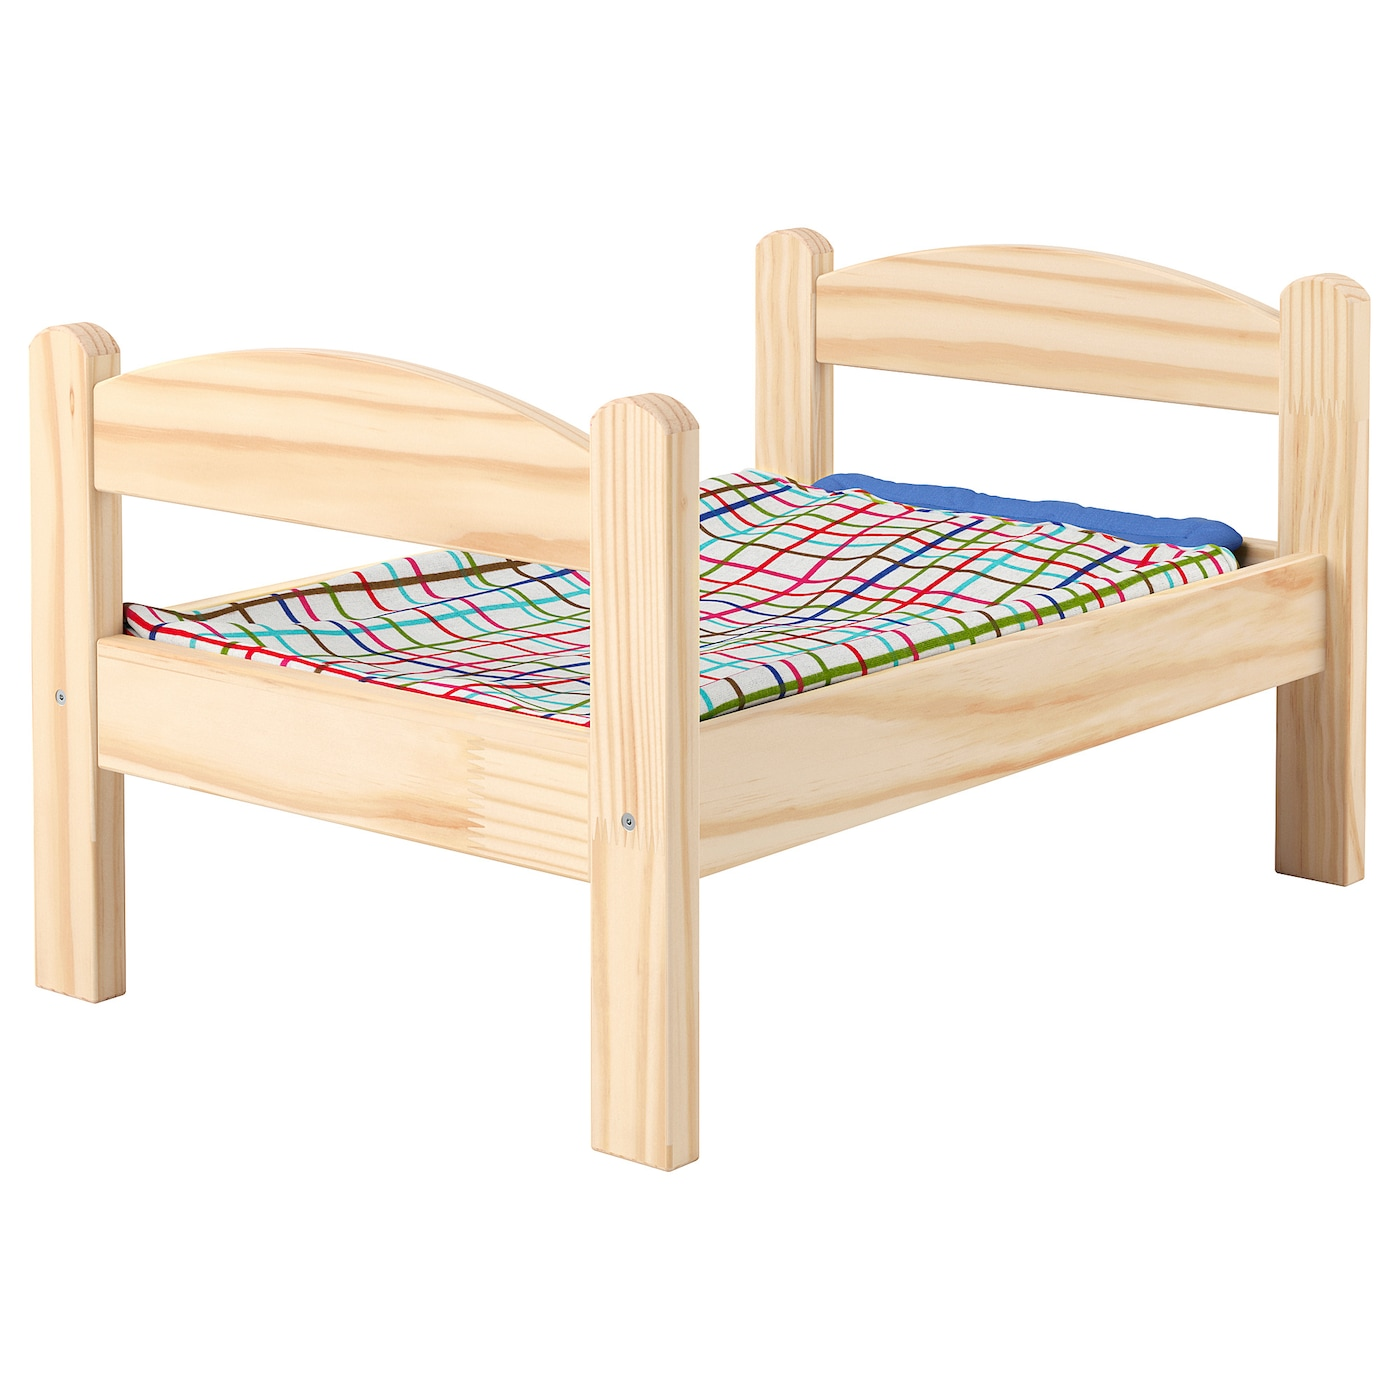 IKEA DUKTIG doll's bed with bedlinen set Encourages make-believe play.